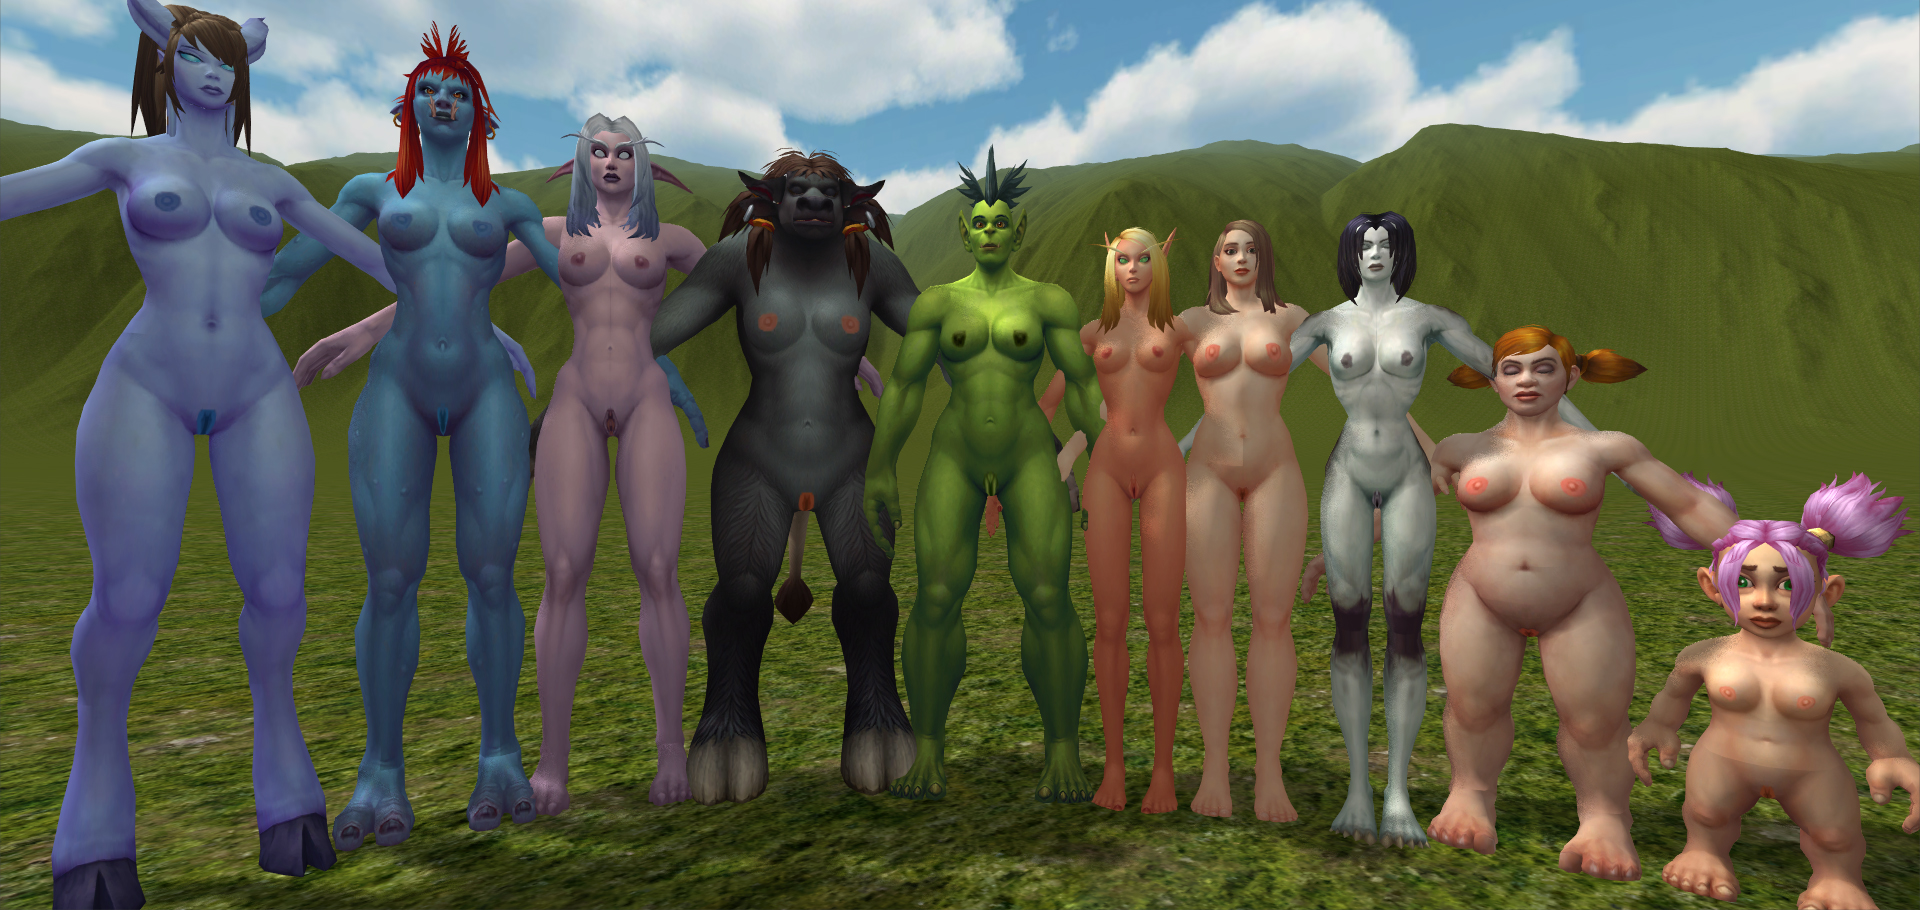 World of warcraft naked elfs porn pic